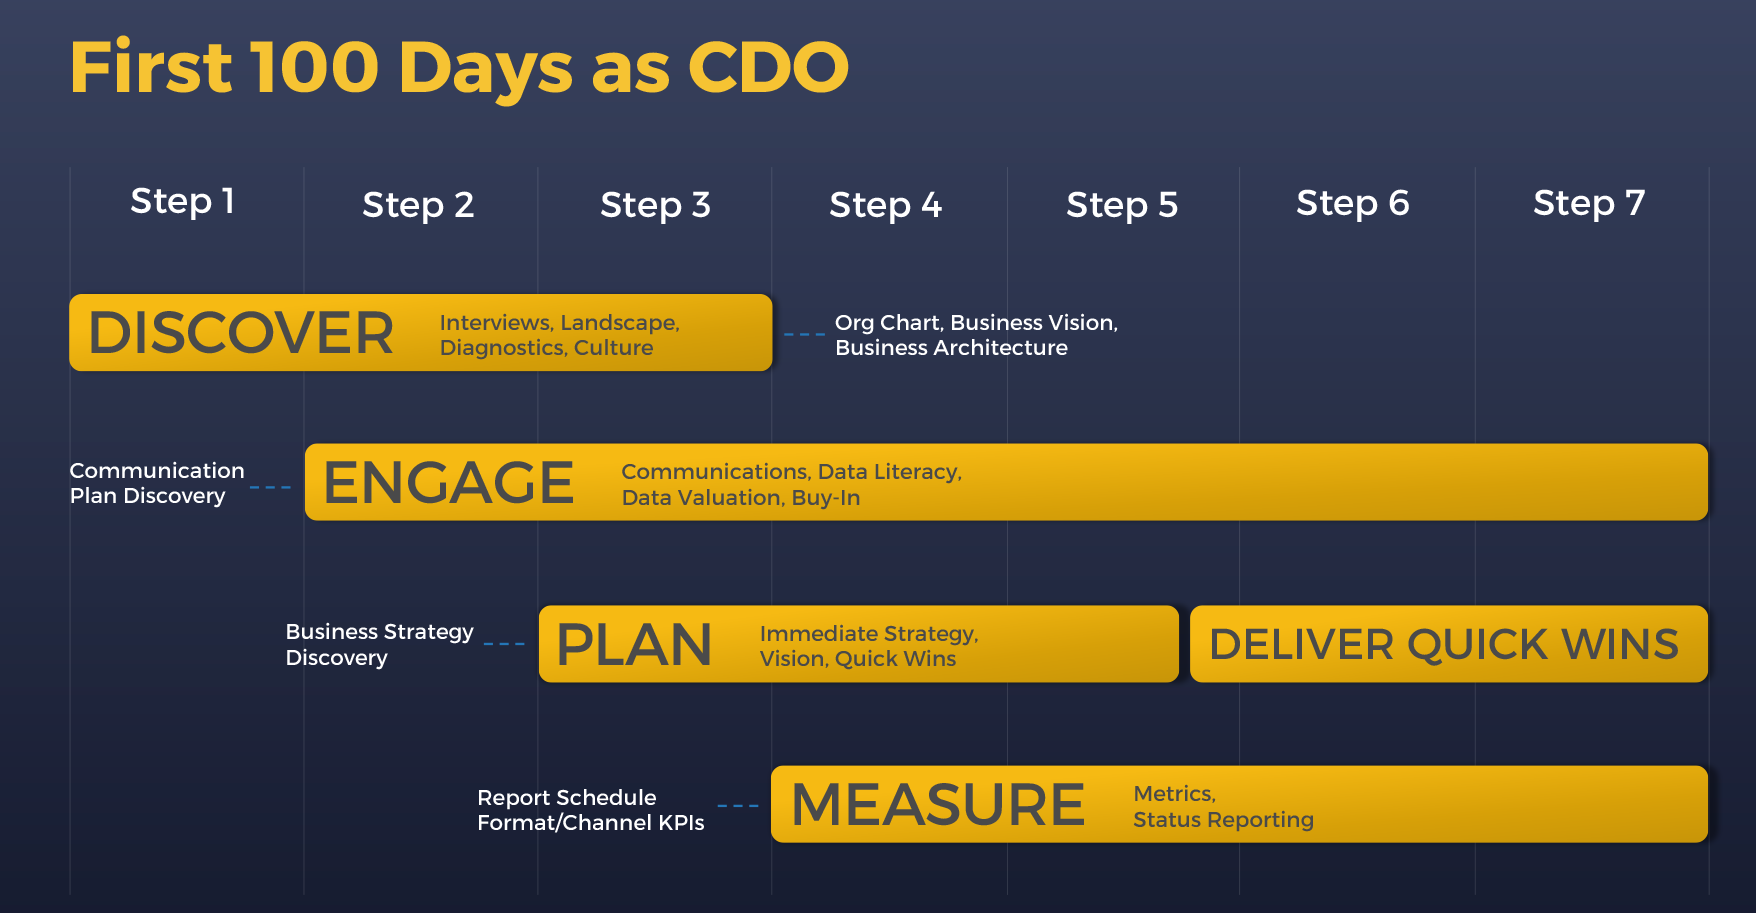 First100daysascdothoughtmodel